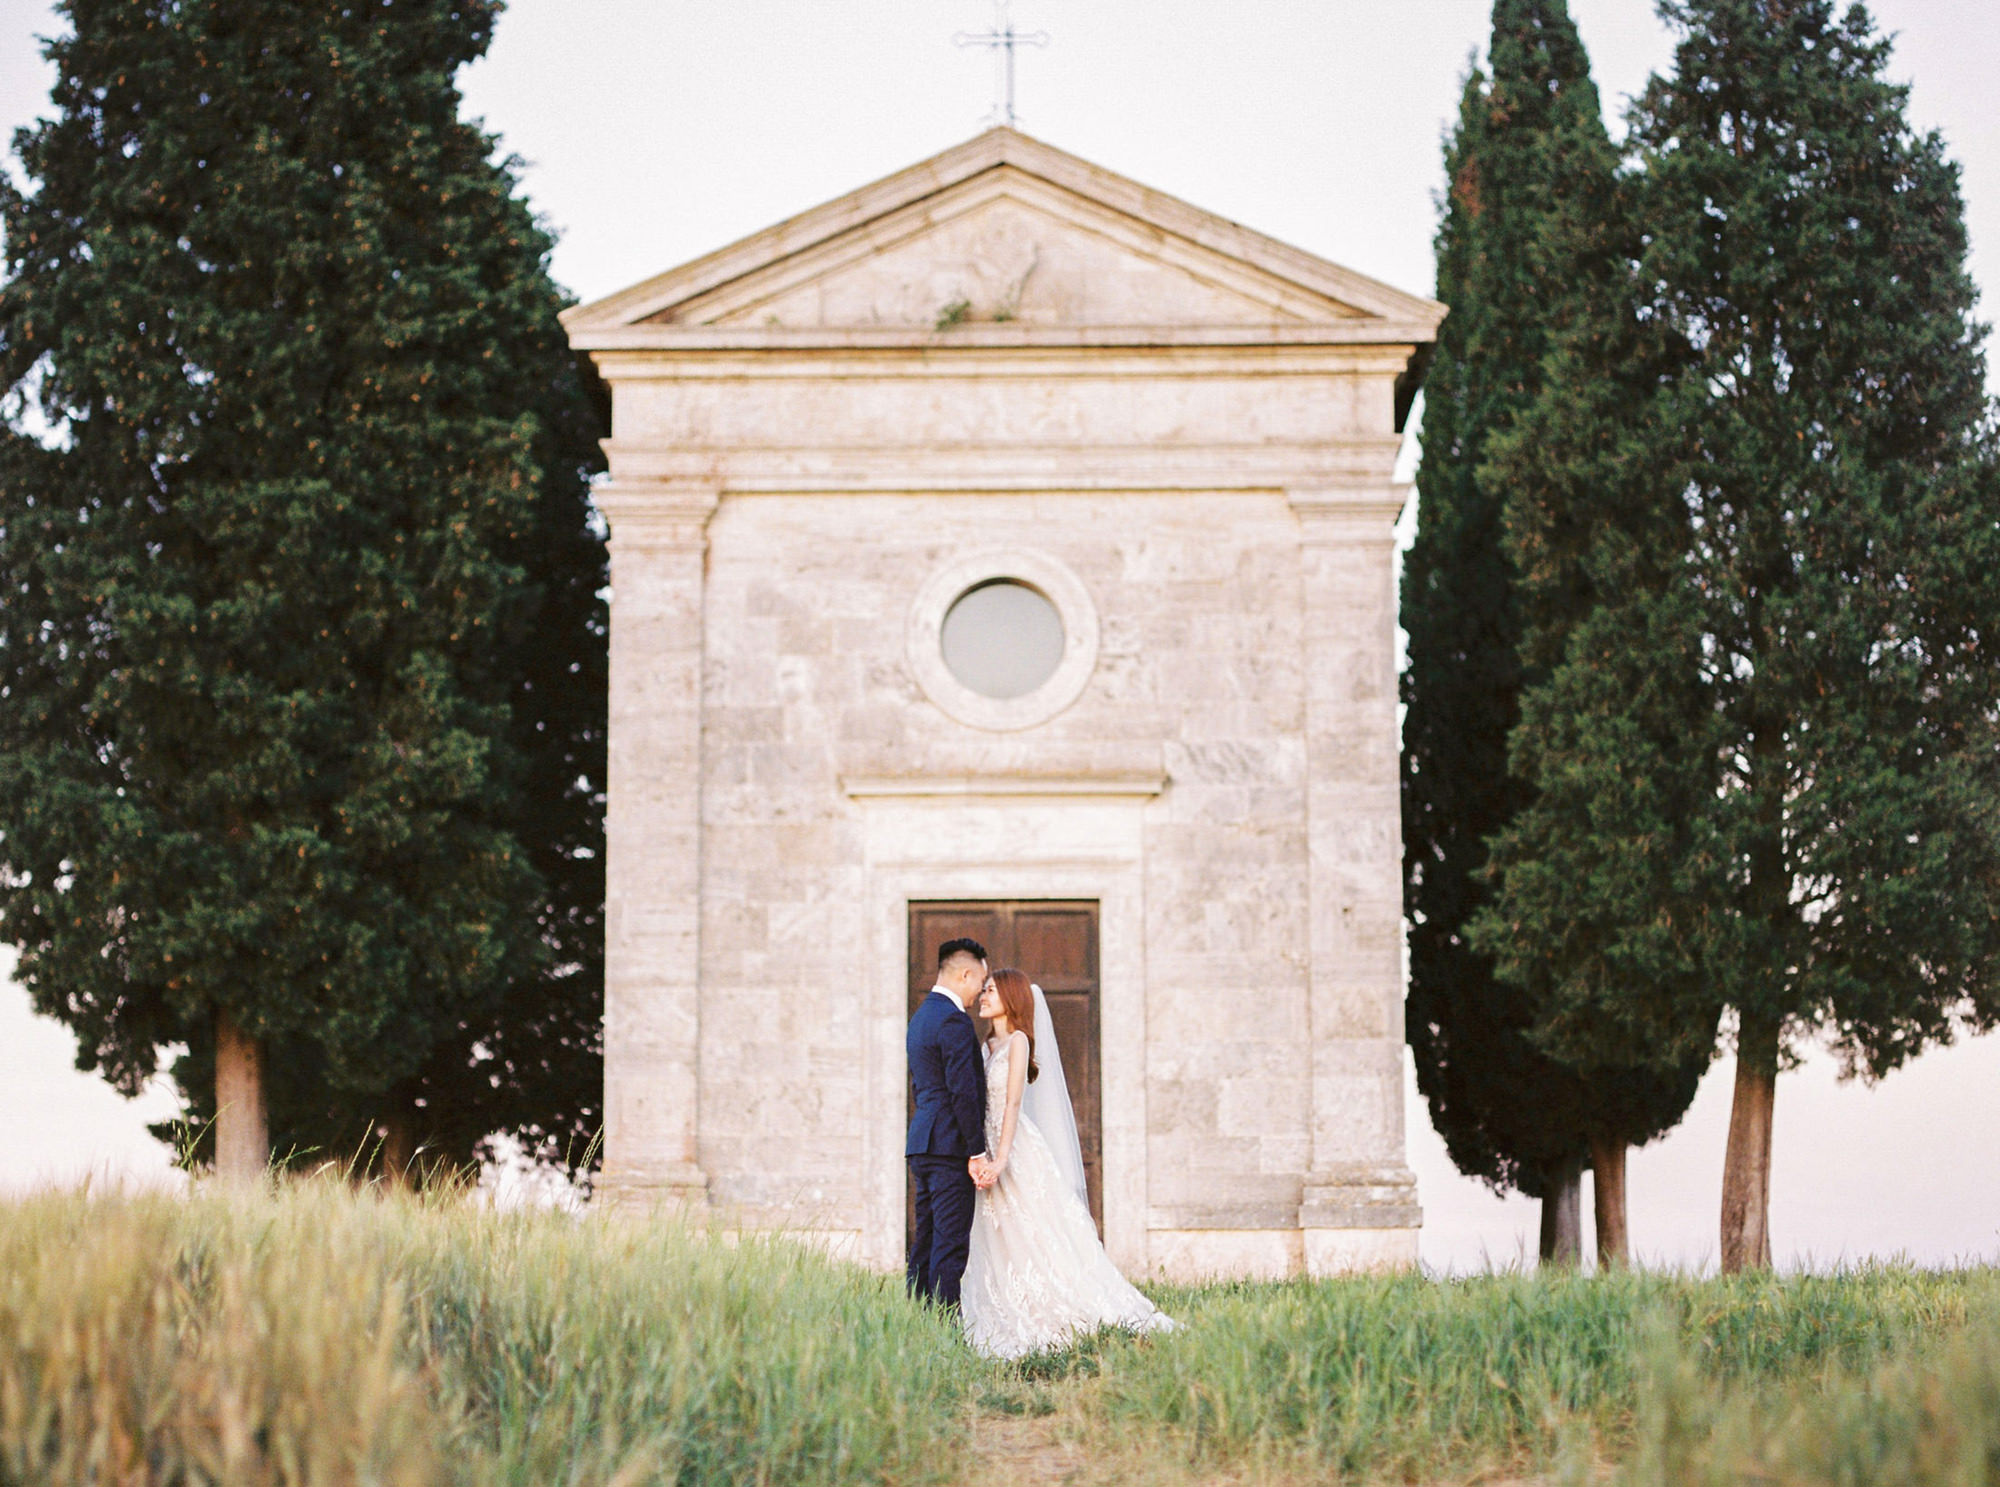 Winnie & Michael by CHYMO & MORE Photography - Highlight (56).jpg